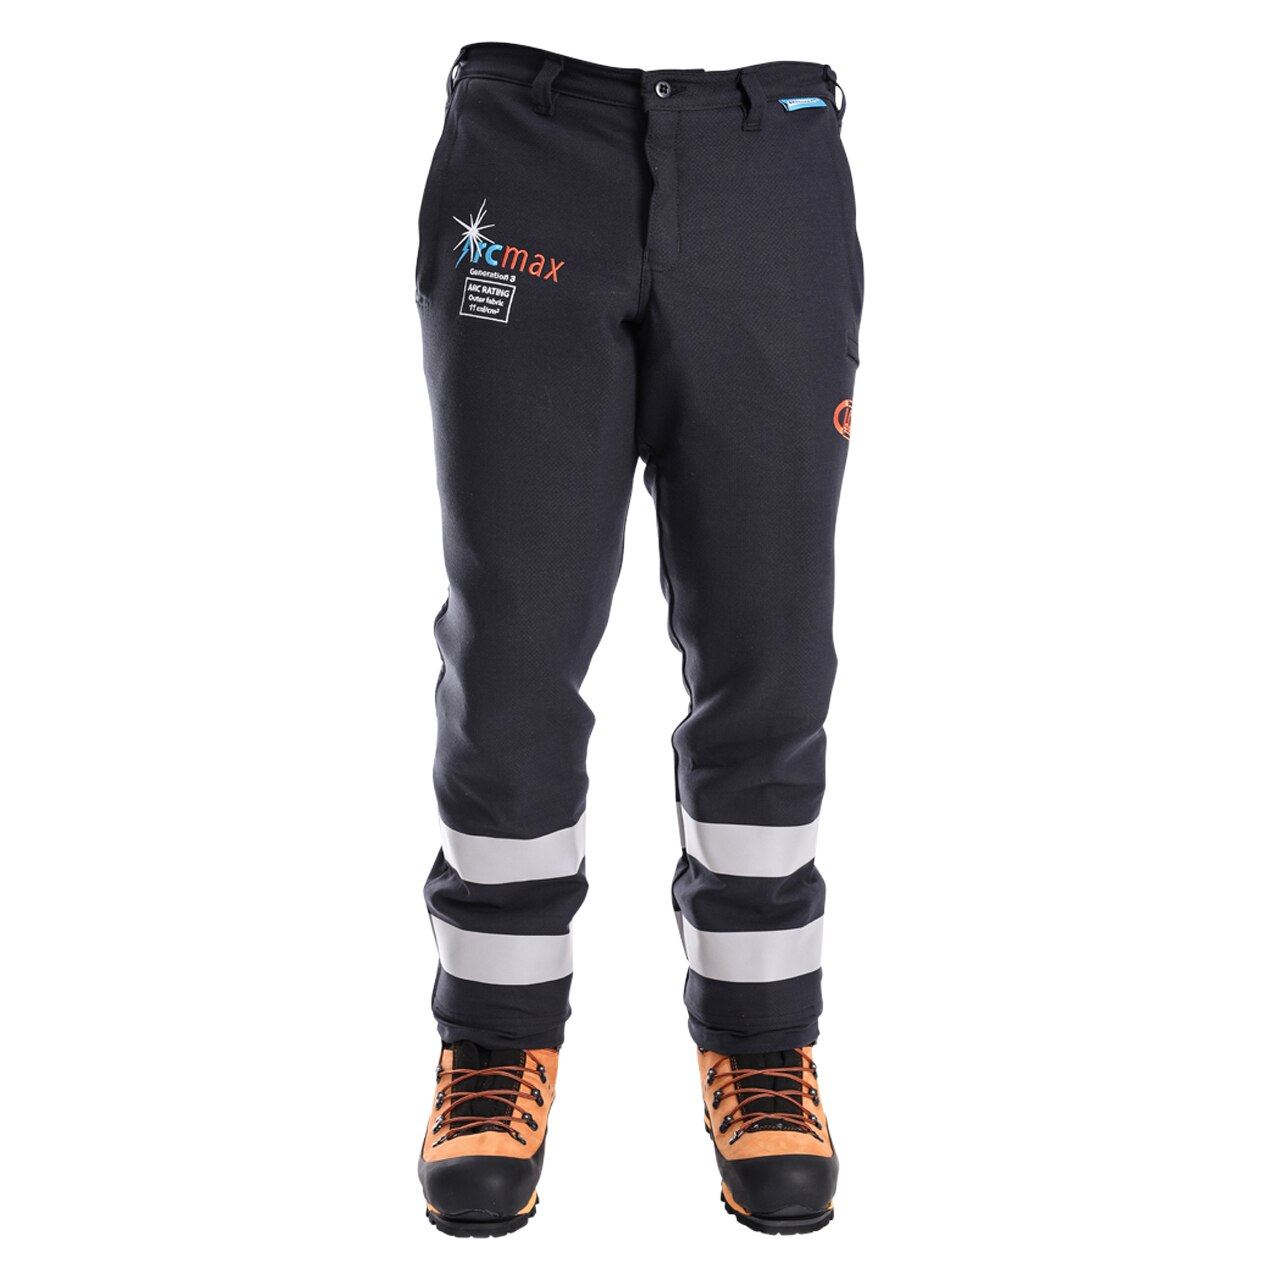 Clogger Arcmax Gen3 Arc Rated Fire Resistant Men's Chainsaw Pants (Now With Stretch)